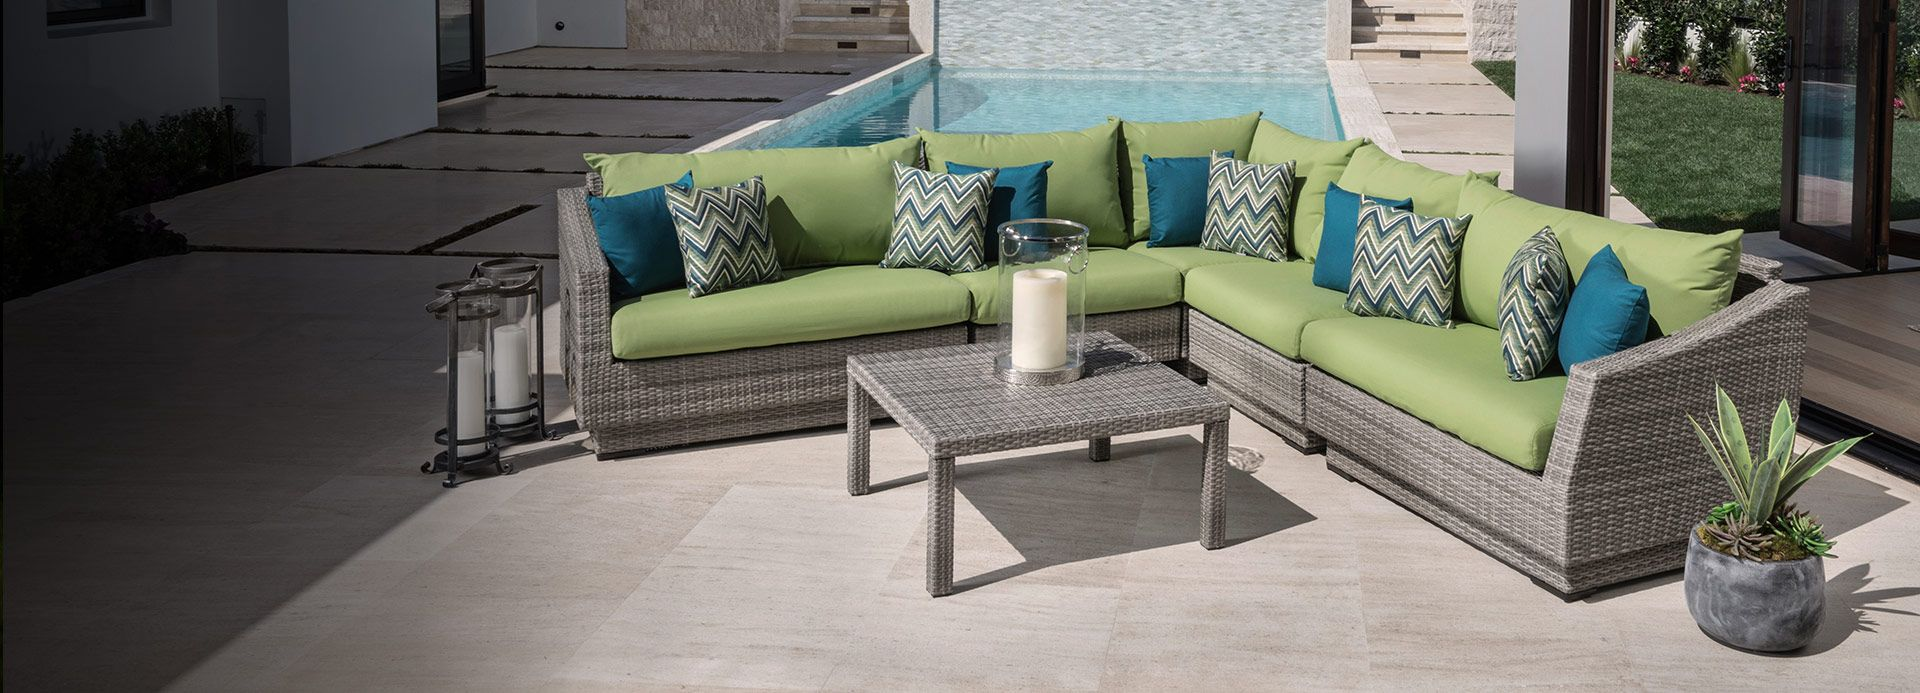 modern outdoor patiopool deck furniture green and teal cushions summer outdoor